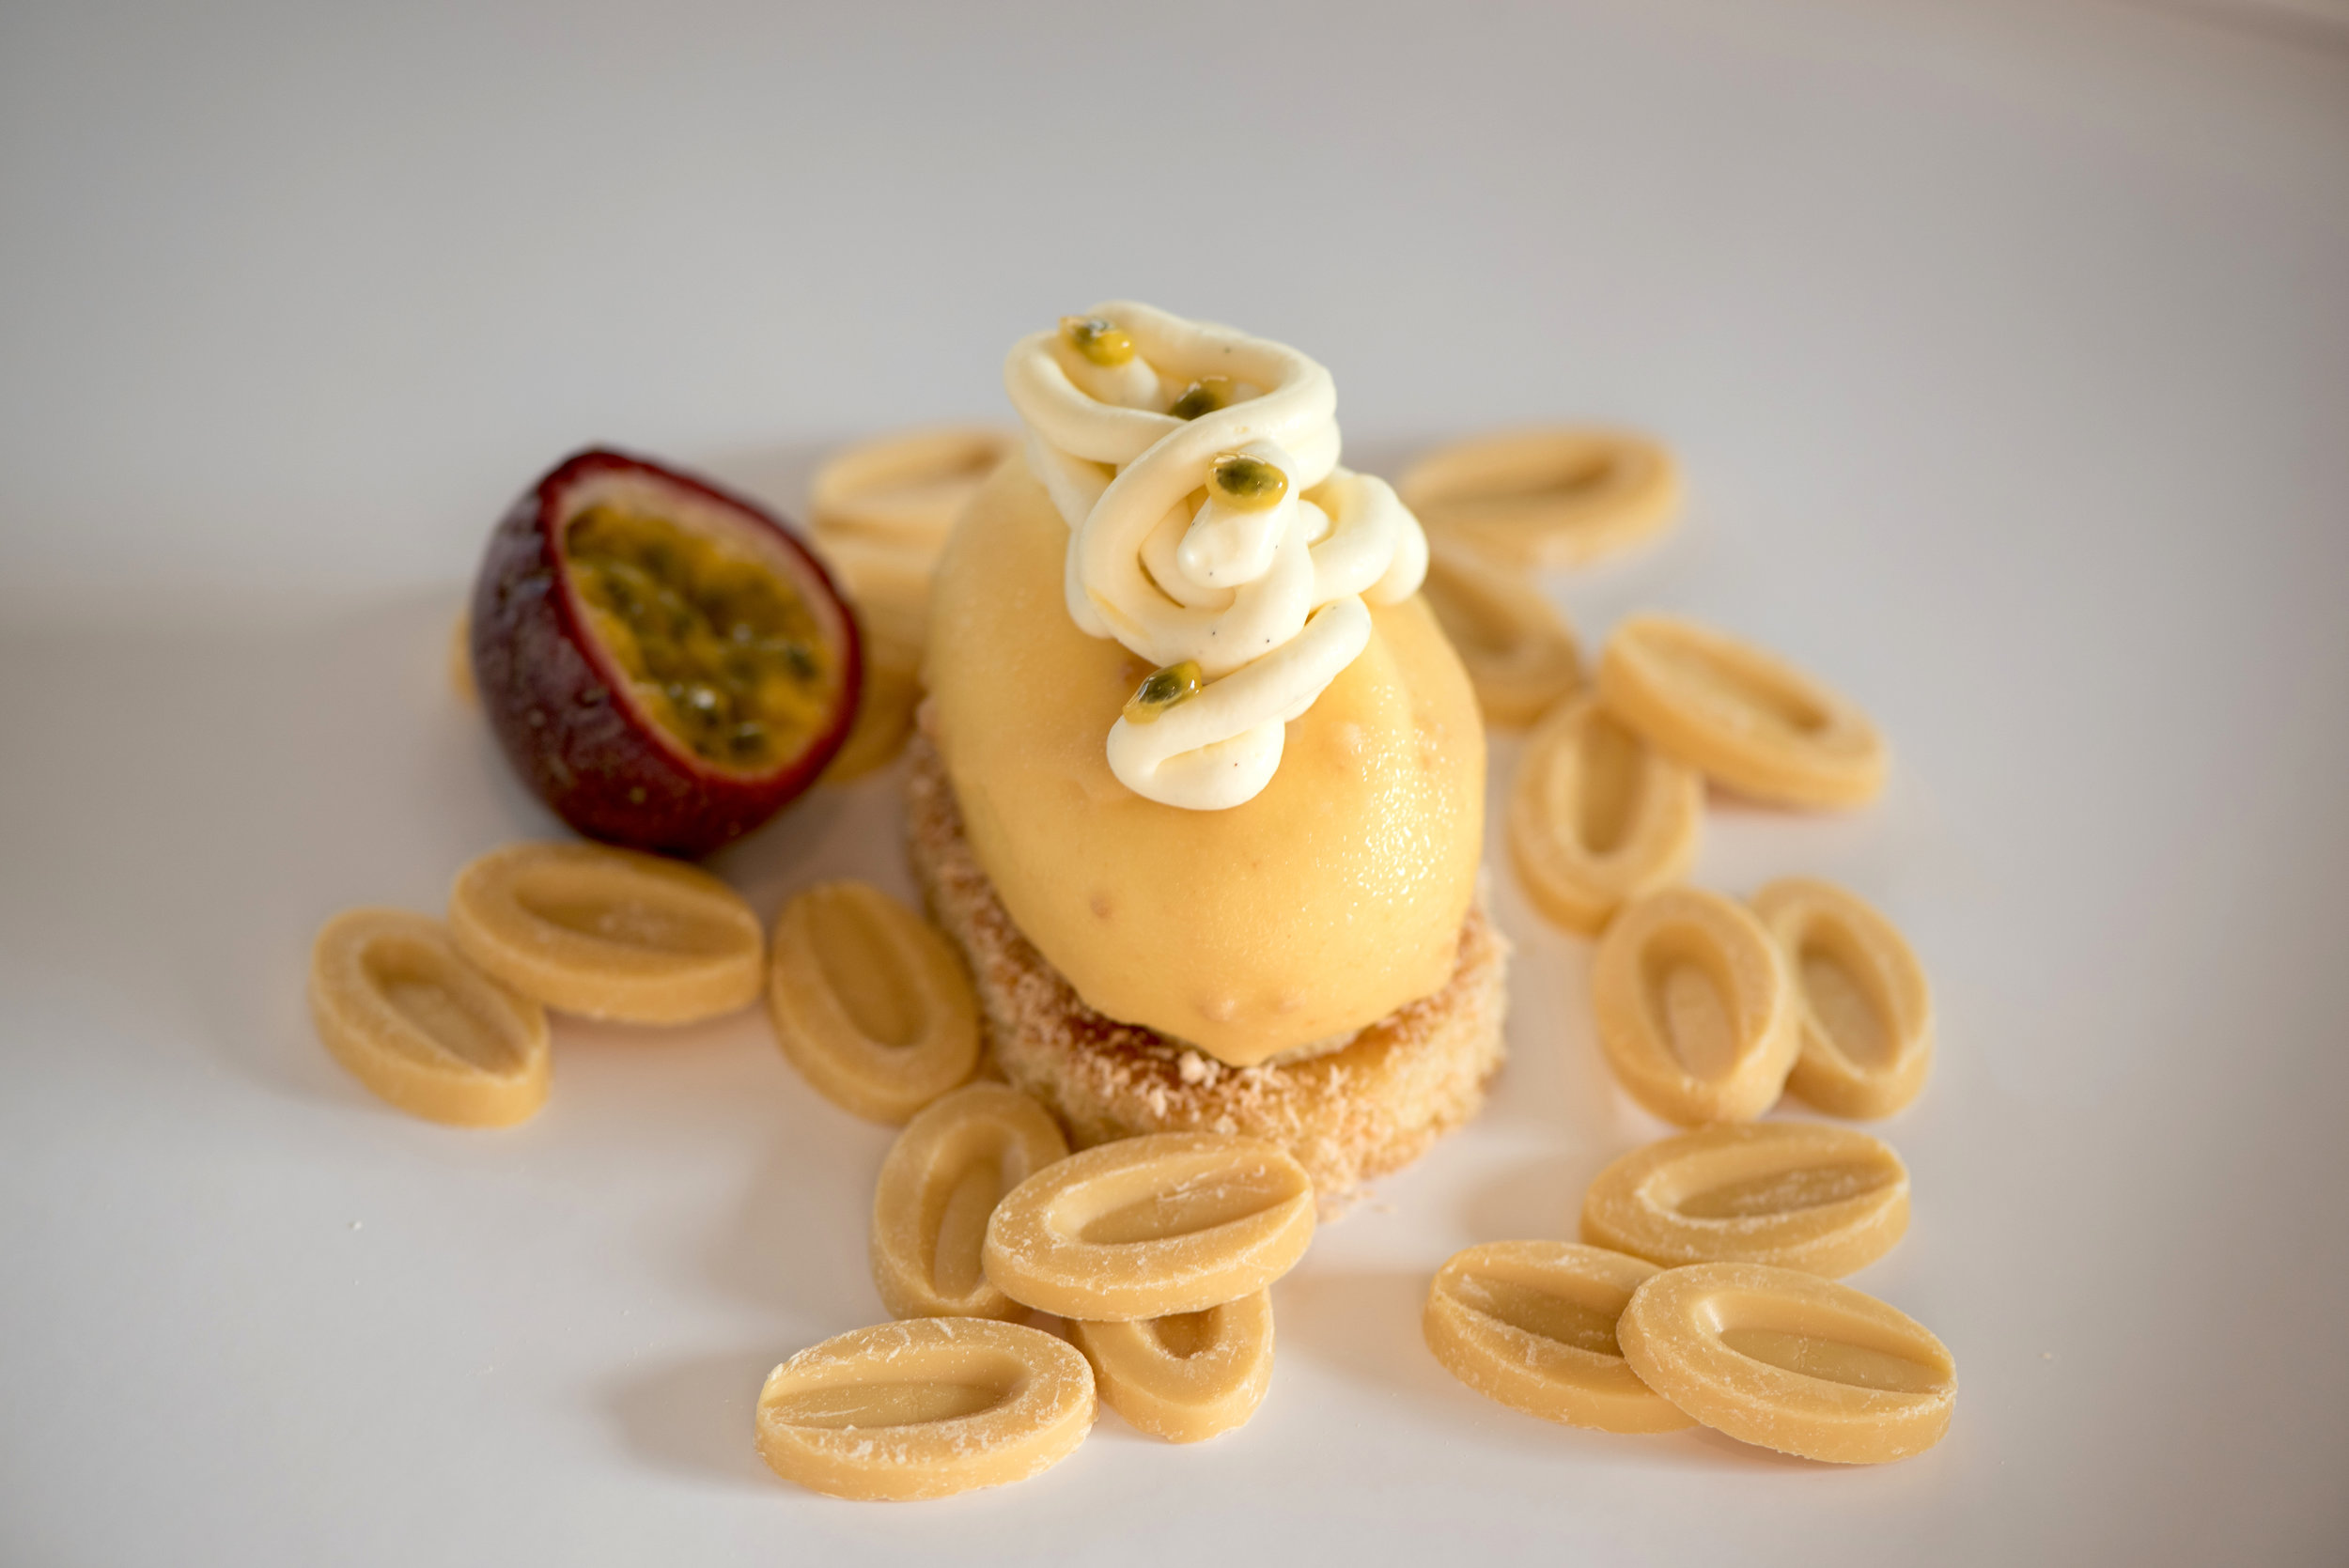 Passion Fruit Cheesecake, Whipped Ivory Noodles